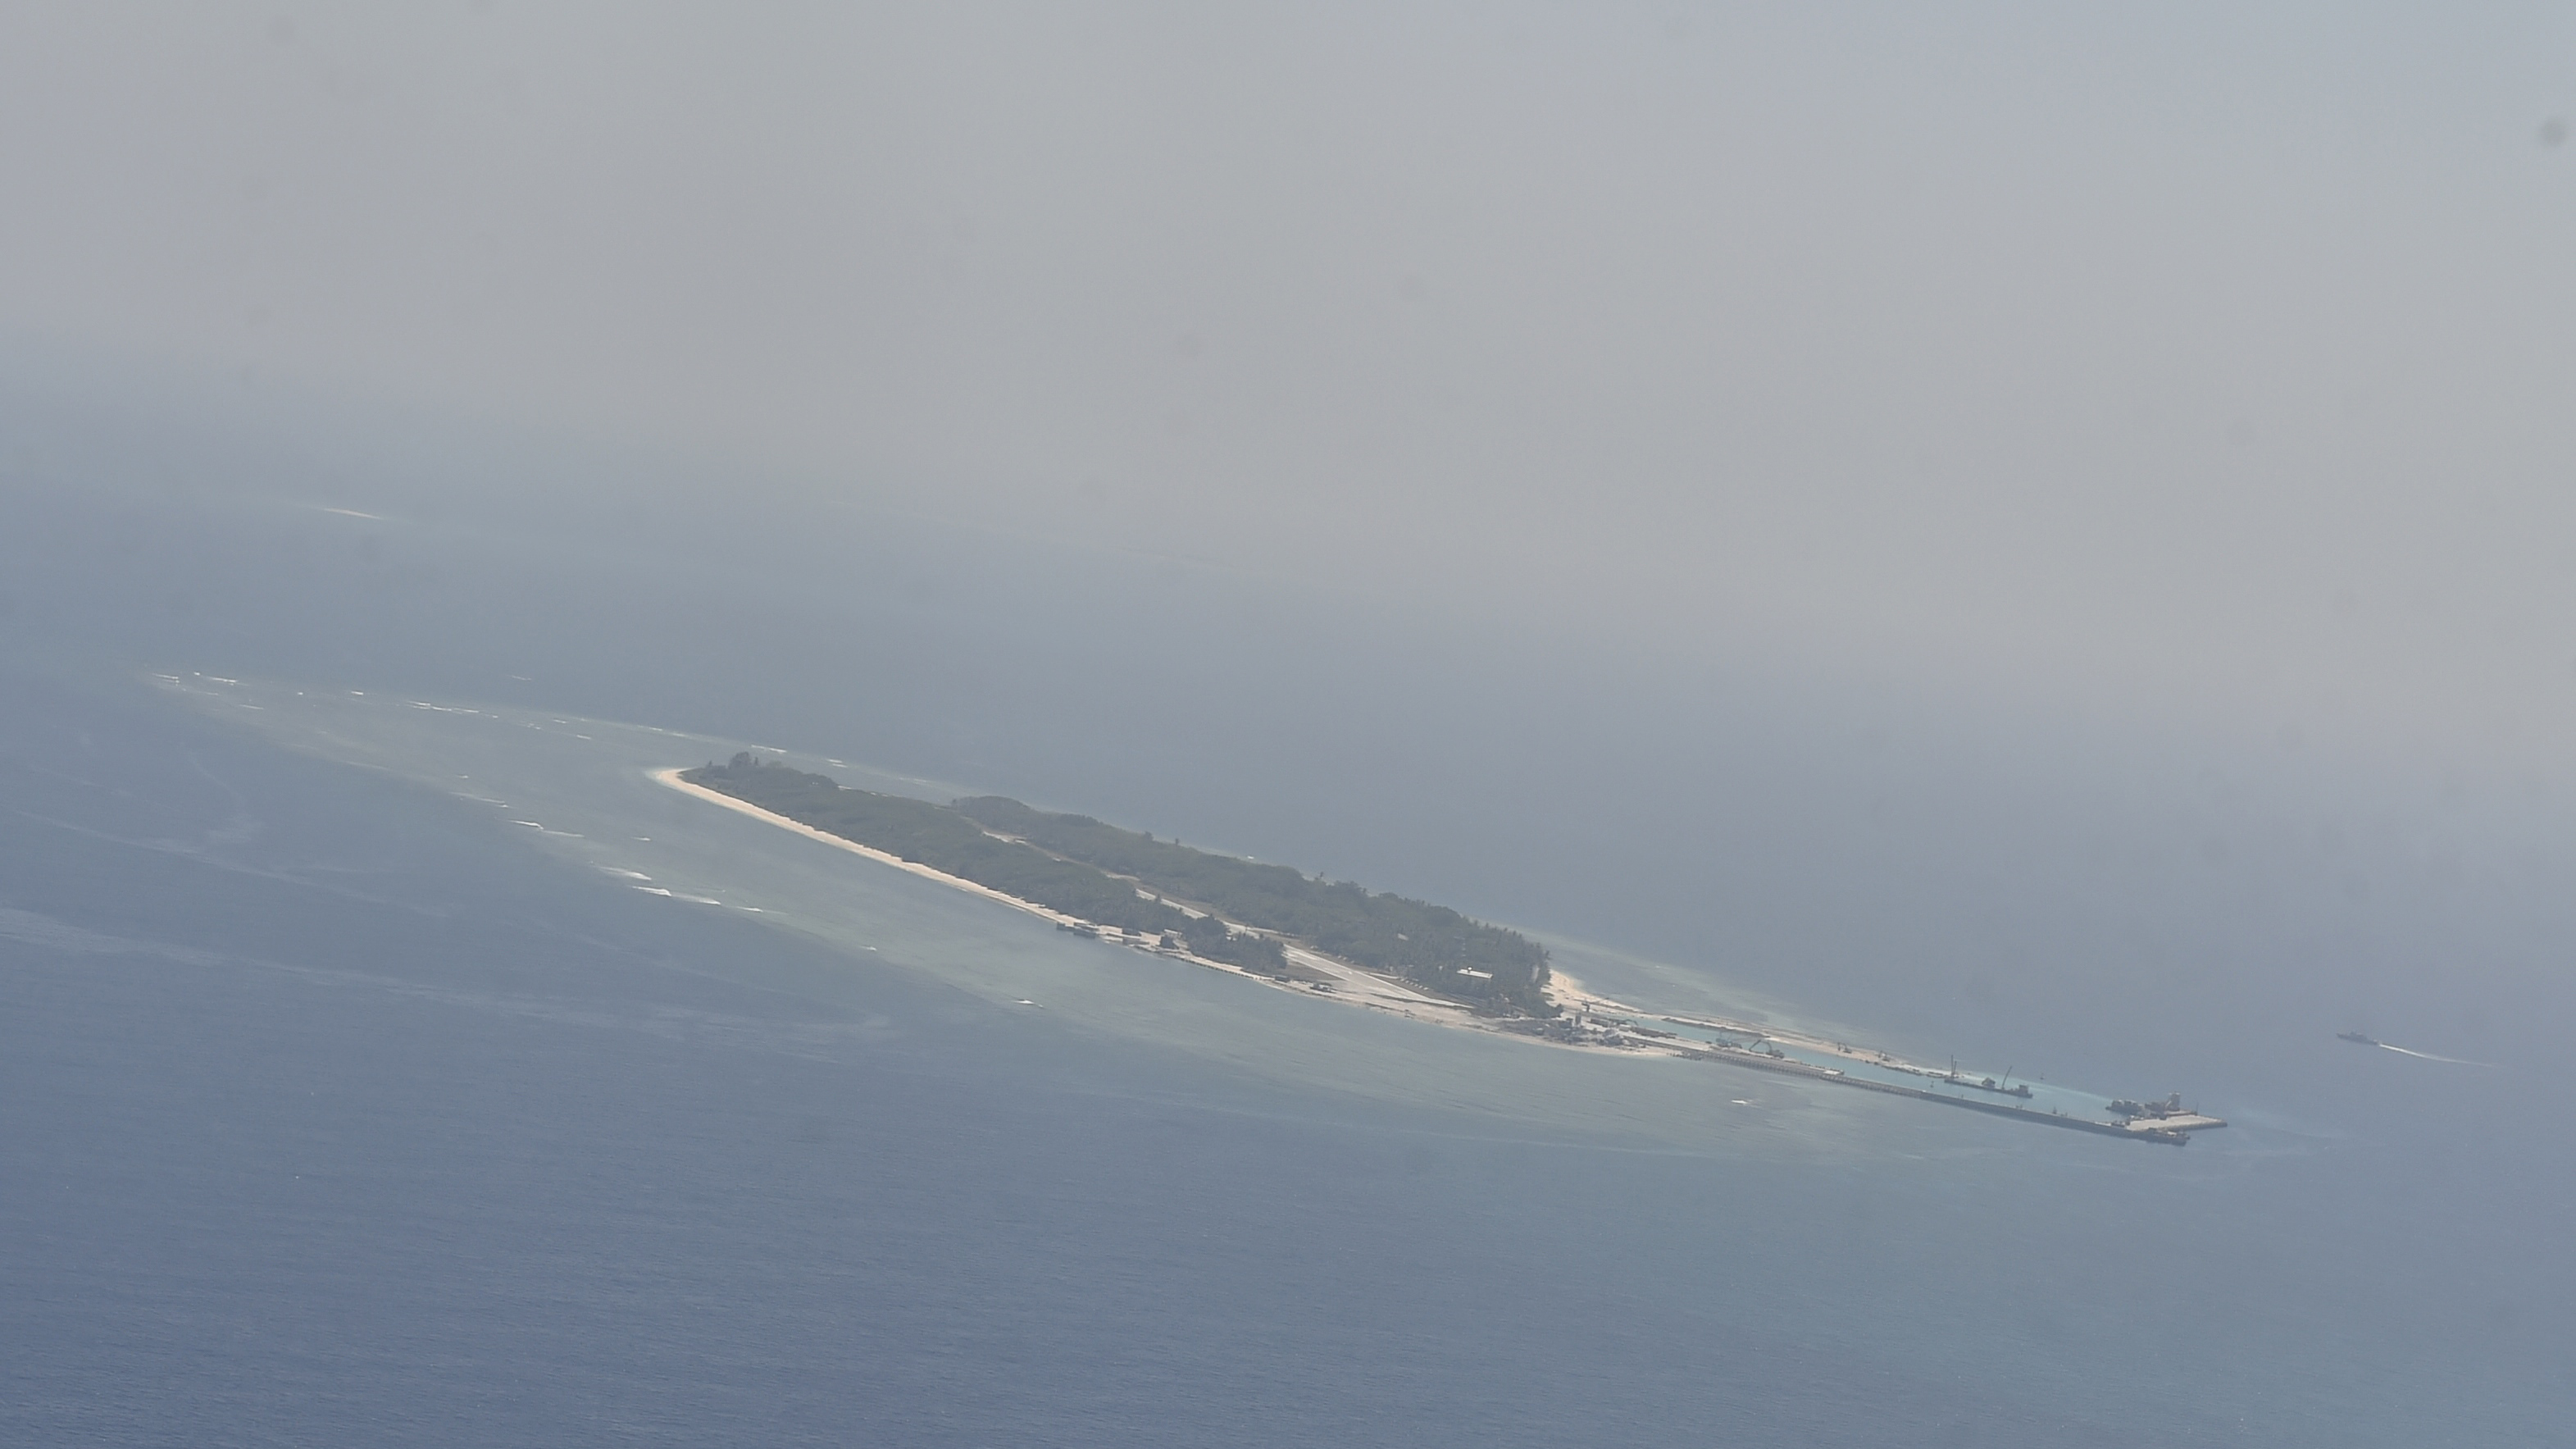 Philippines wins in court over South China Sea dispute with China